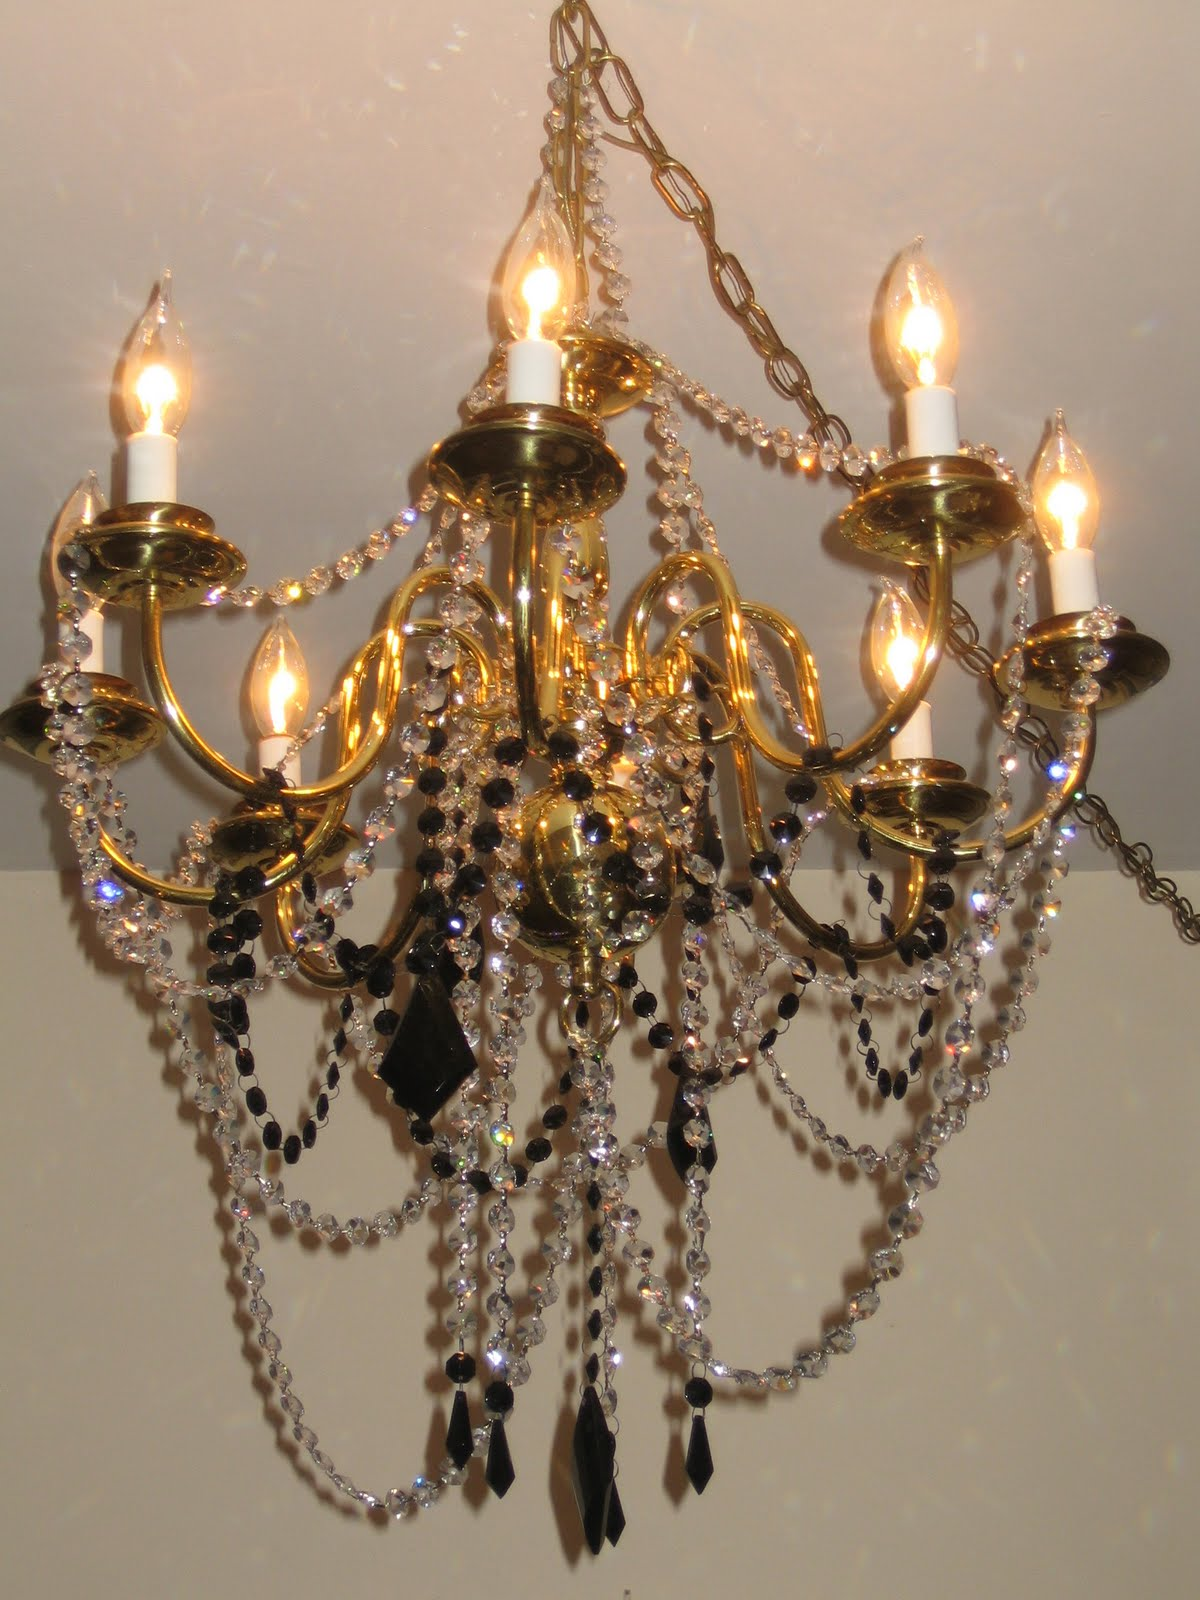 Chandelier renovation upcycled lighting redo chandelier